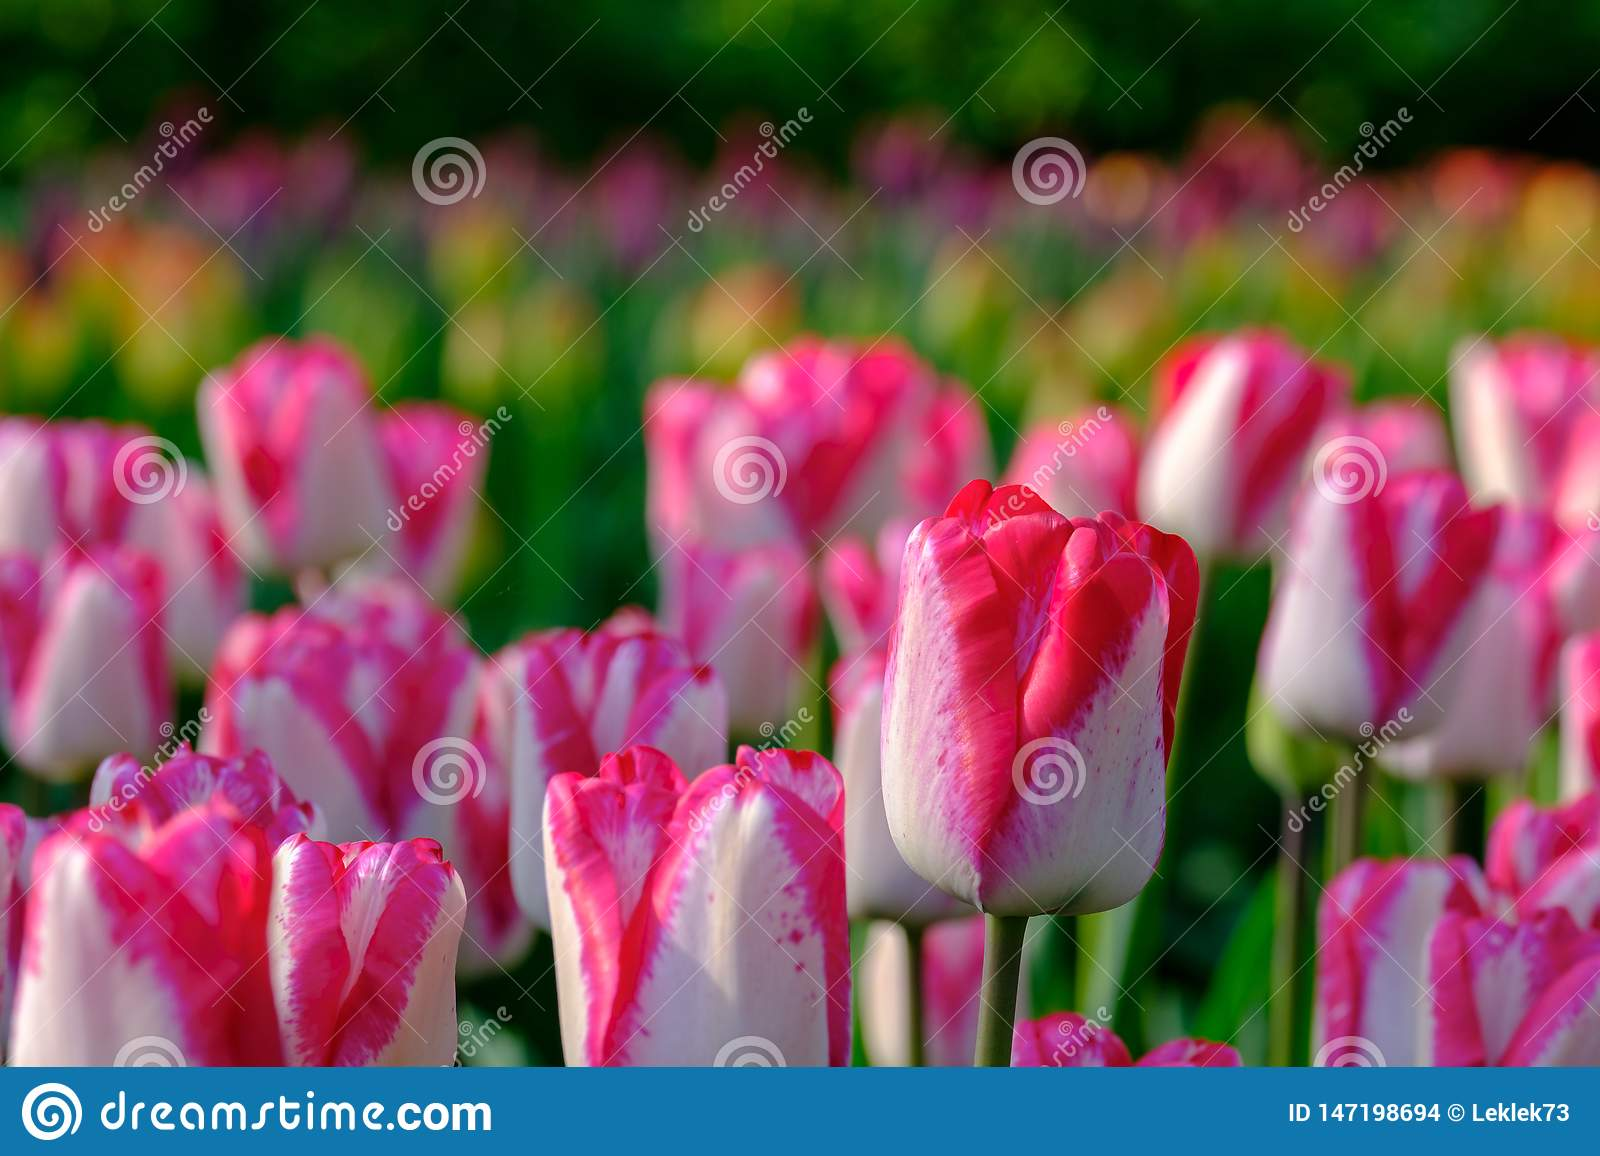 Brightly coloured pink and white tulips on display at Keukenhof Gardens, Lisse, South Holland